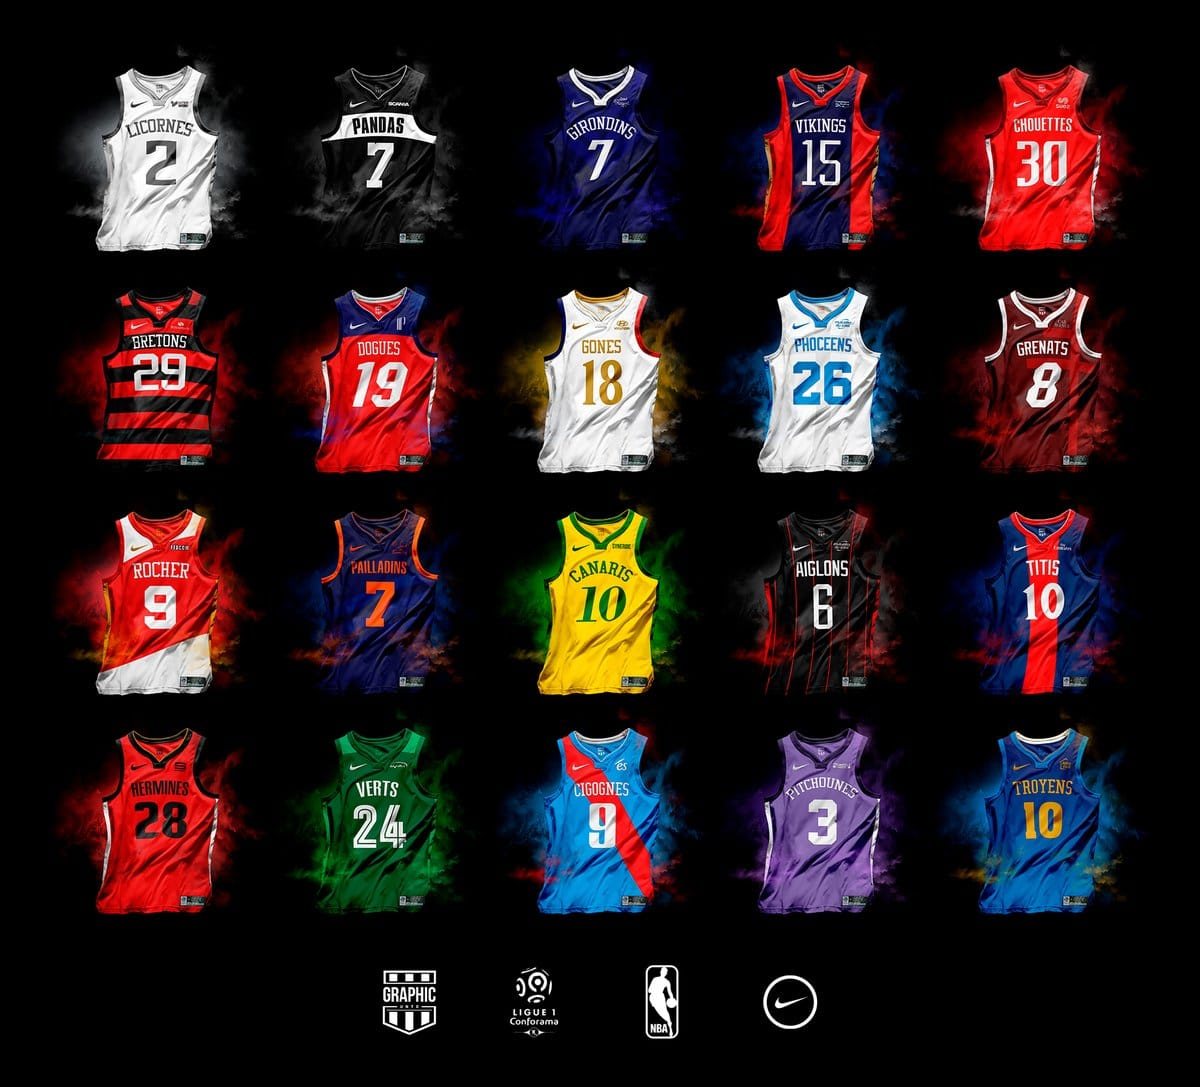 Les Maillots De Ligue 1 En Mode Nba Par Graphic Untd Foot Inside